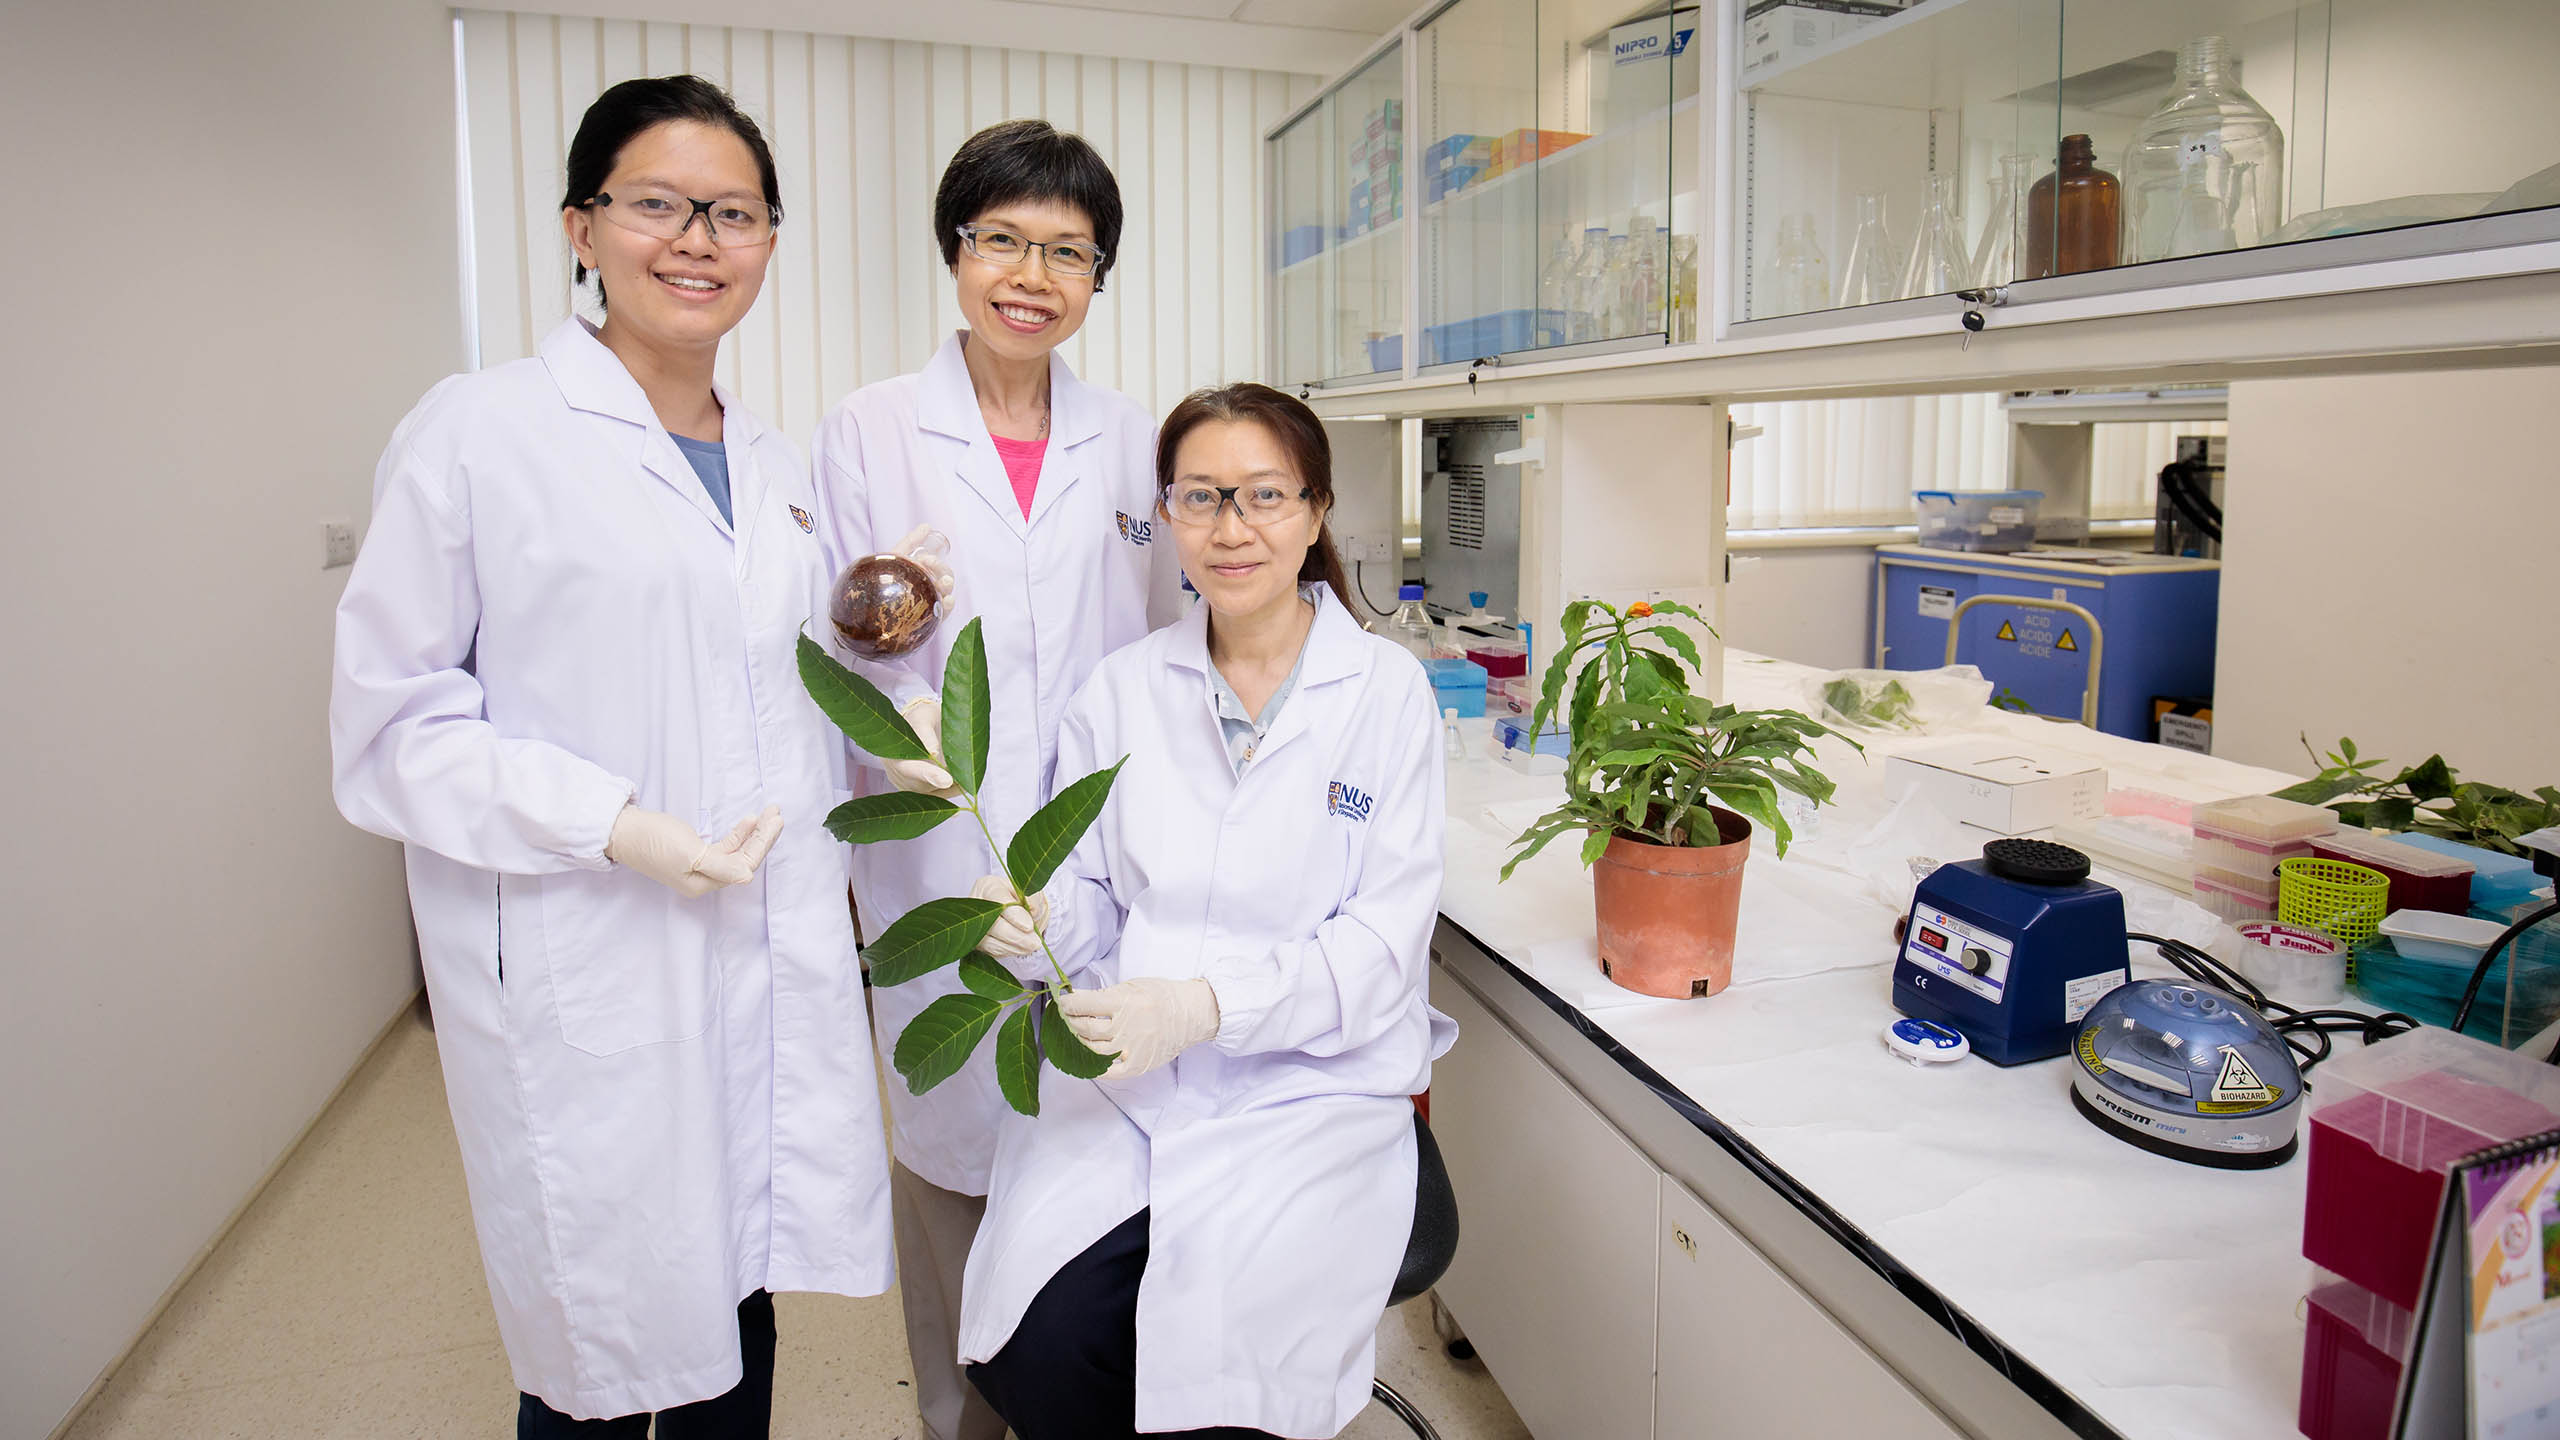 An NUS research team comprising Dr Siew Yin Yin (left), Dr Neo Soek Ying (centre) and Assoc Prof Koh Hwee Ling (right), uncovered anti-cancer properties in six tropical medical plants. Photo courtesy: NUS